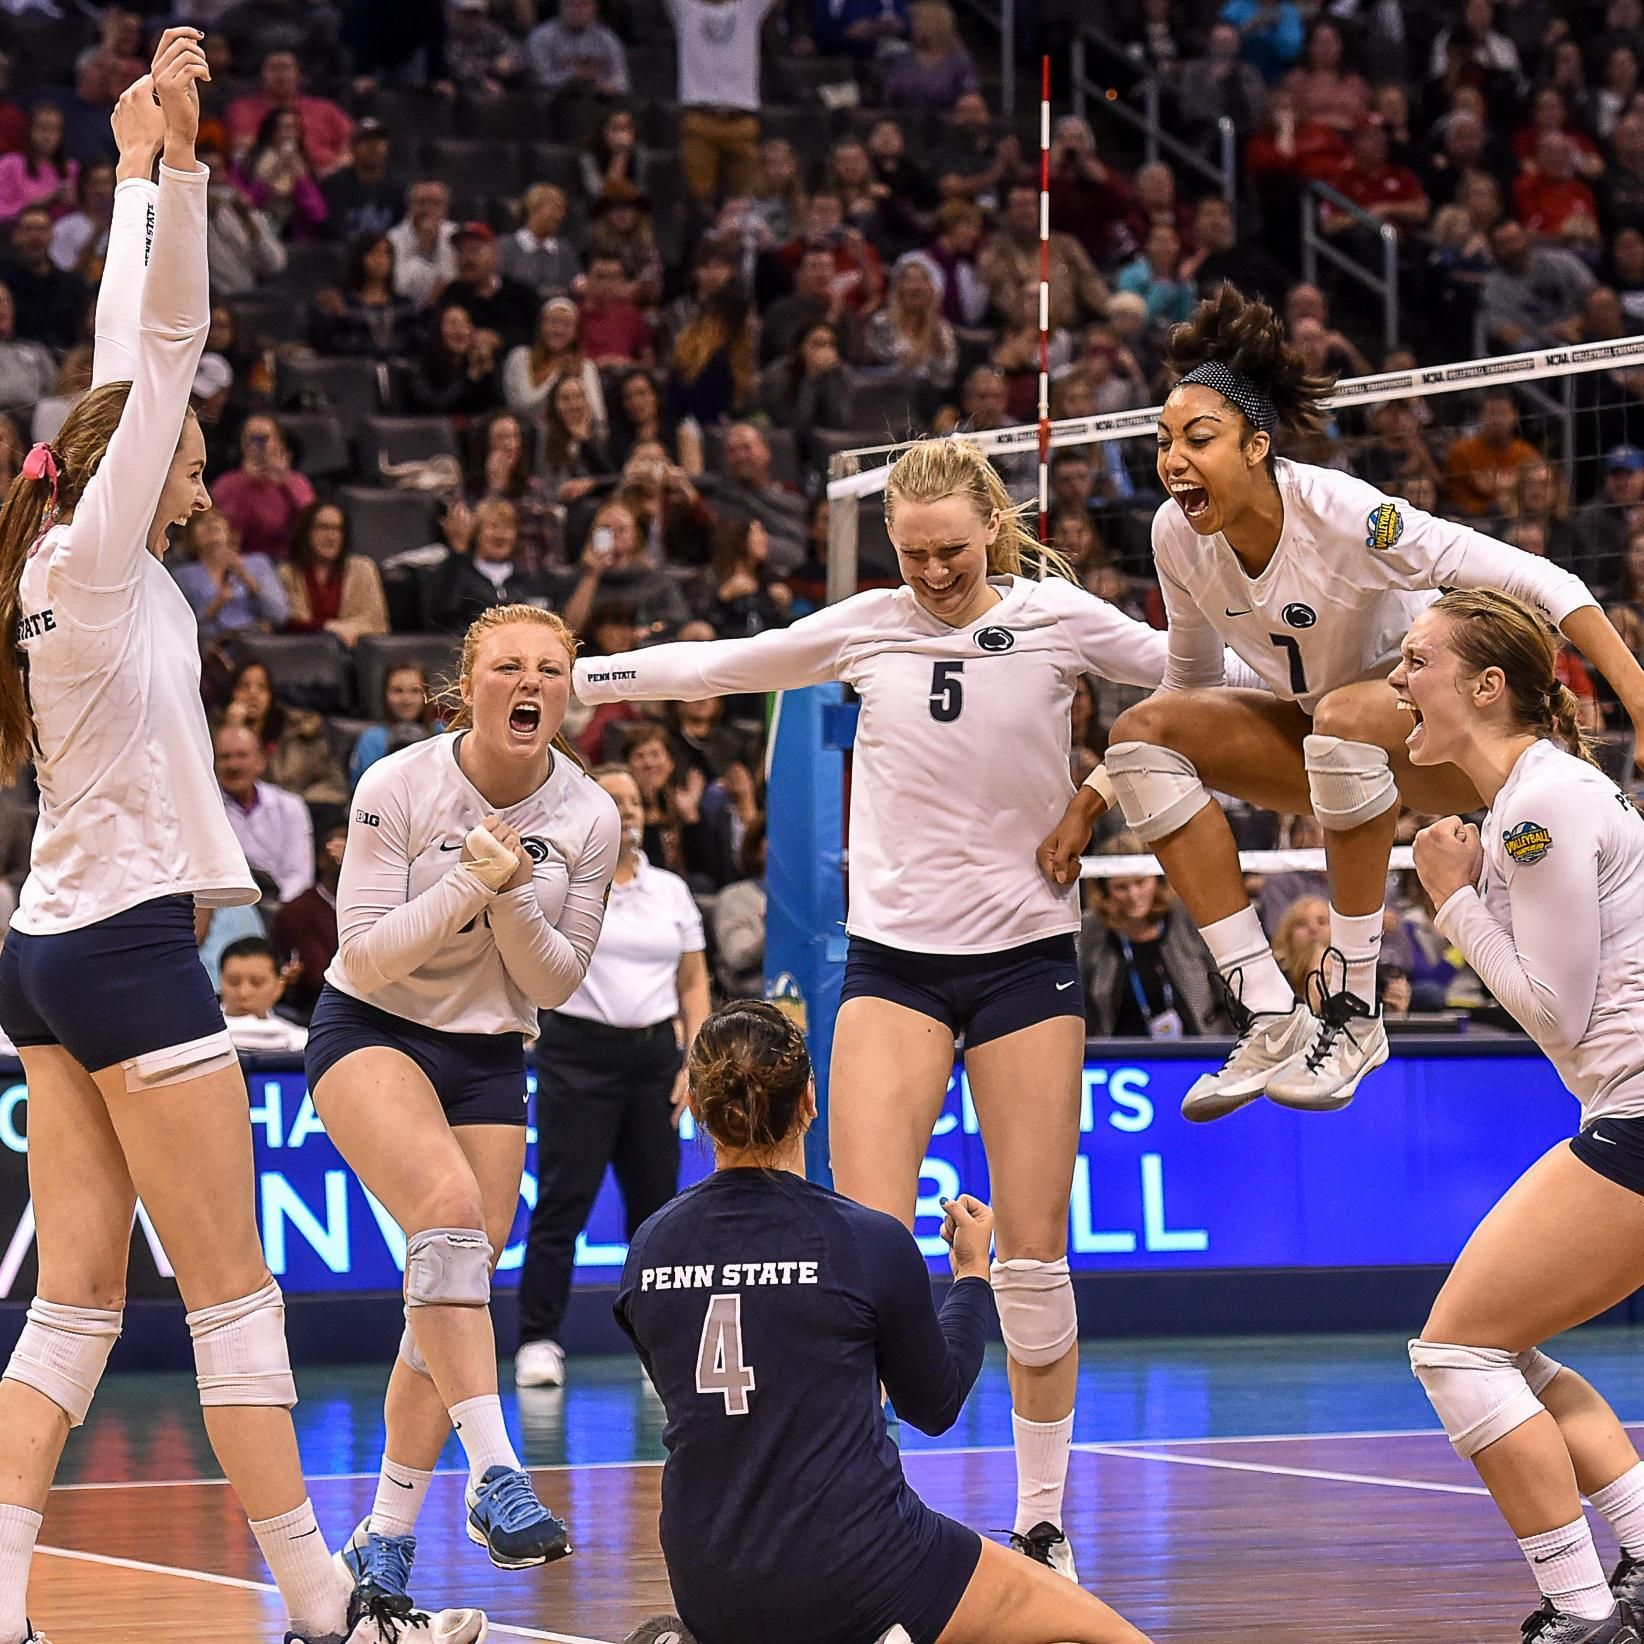 Rose S Penn State Avp Beach Volleyball Beach Volleyball Penn State Volleyball